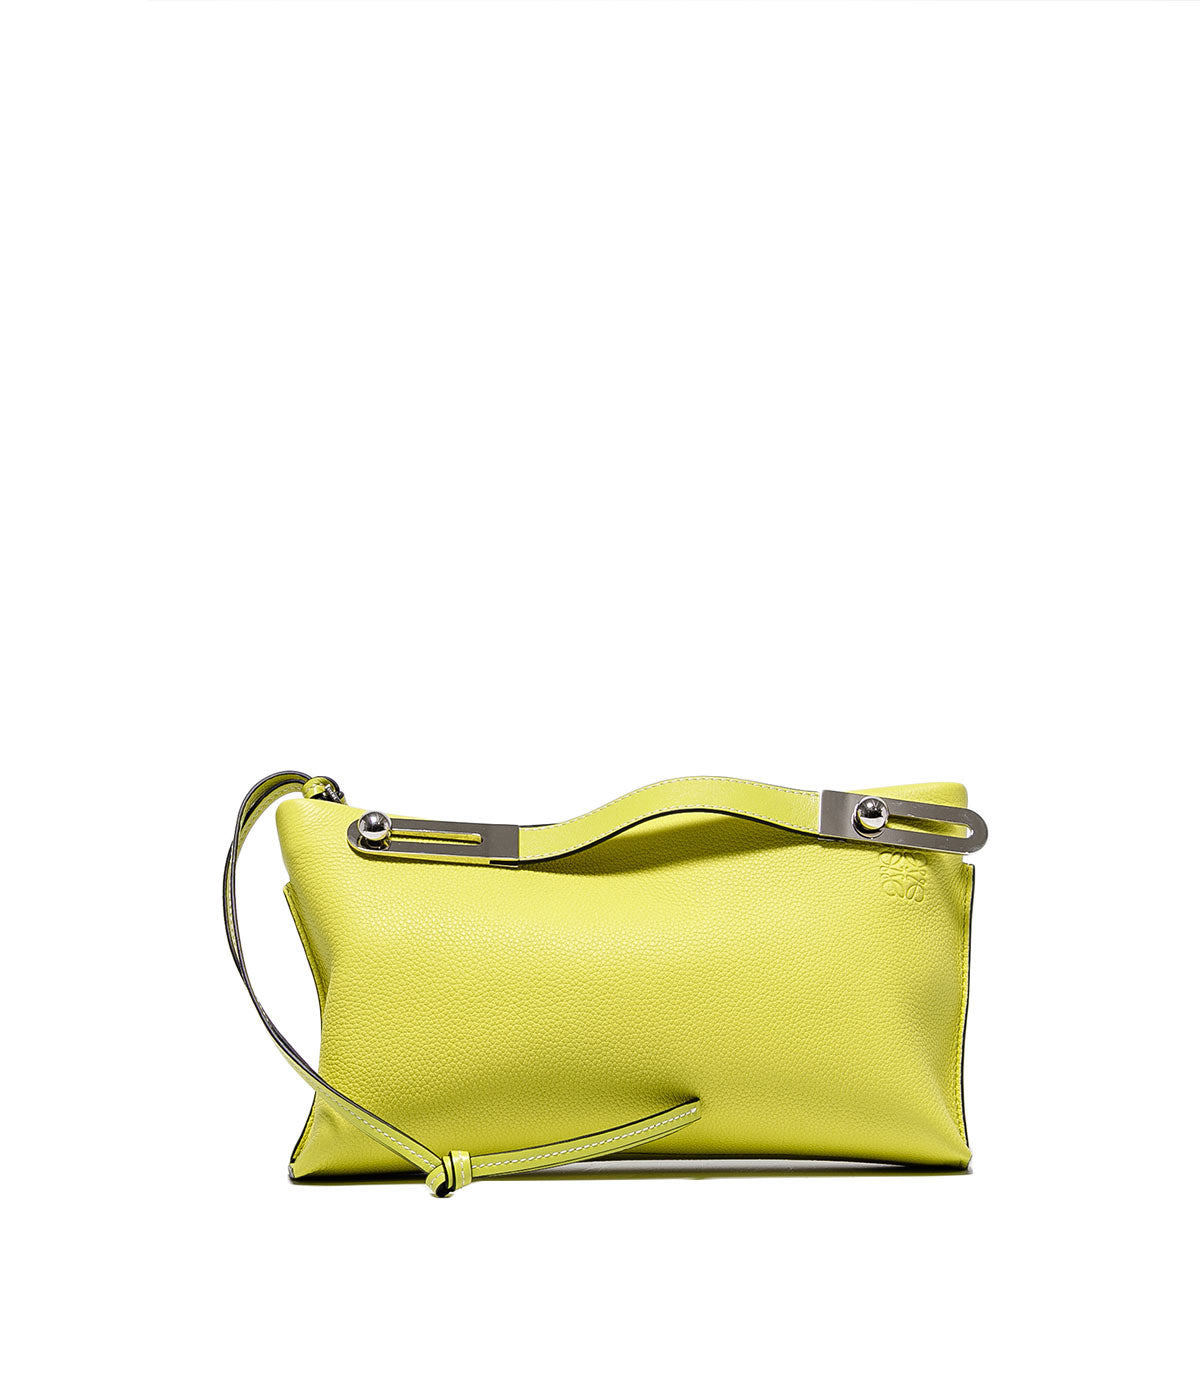 Lemon Yellow Small Missy Bag